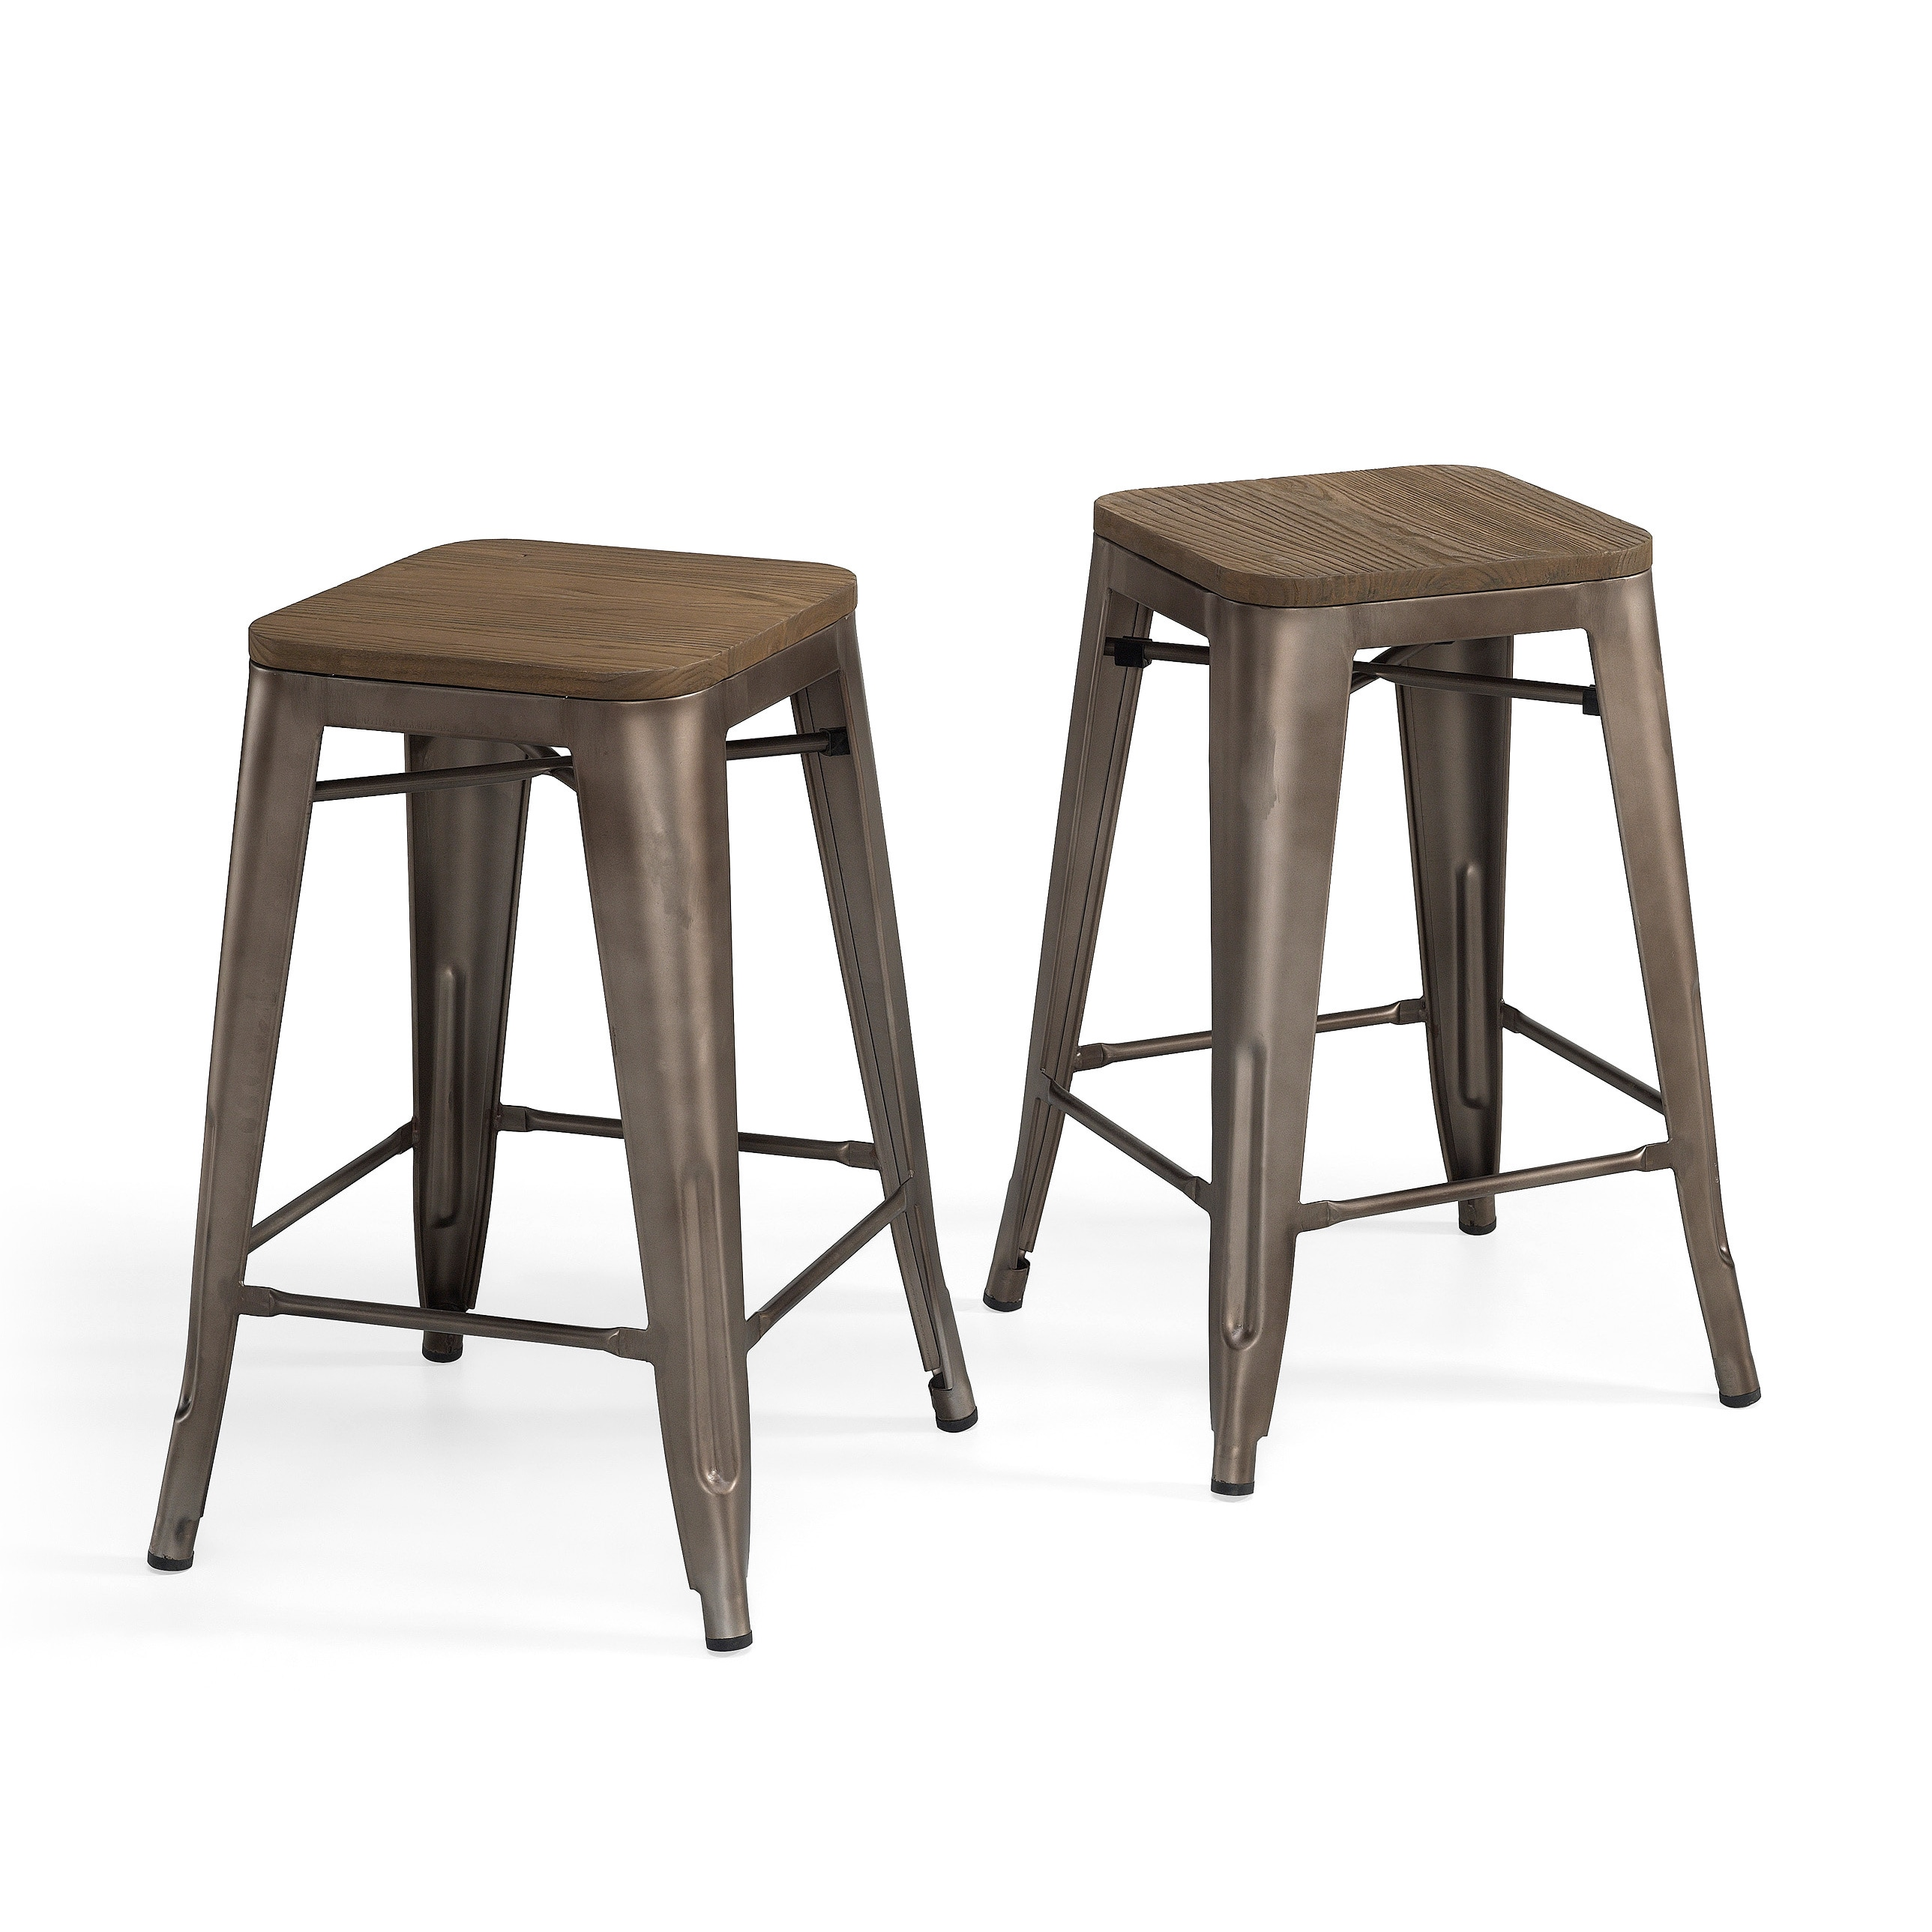 Superb img of Tabouret Vintage Wood Seat Counter Stools (Set of 2) Overstock  with #705E4E color and 2577x2577 pixels